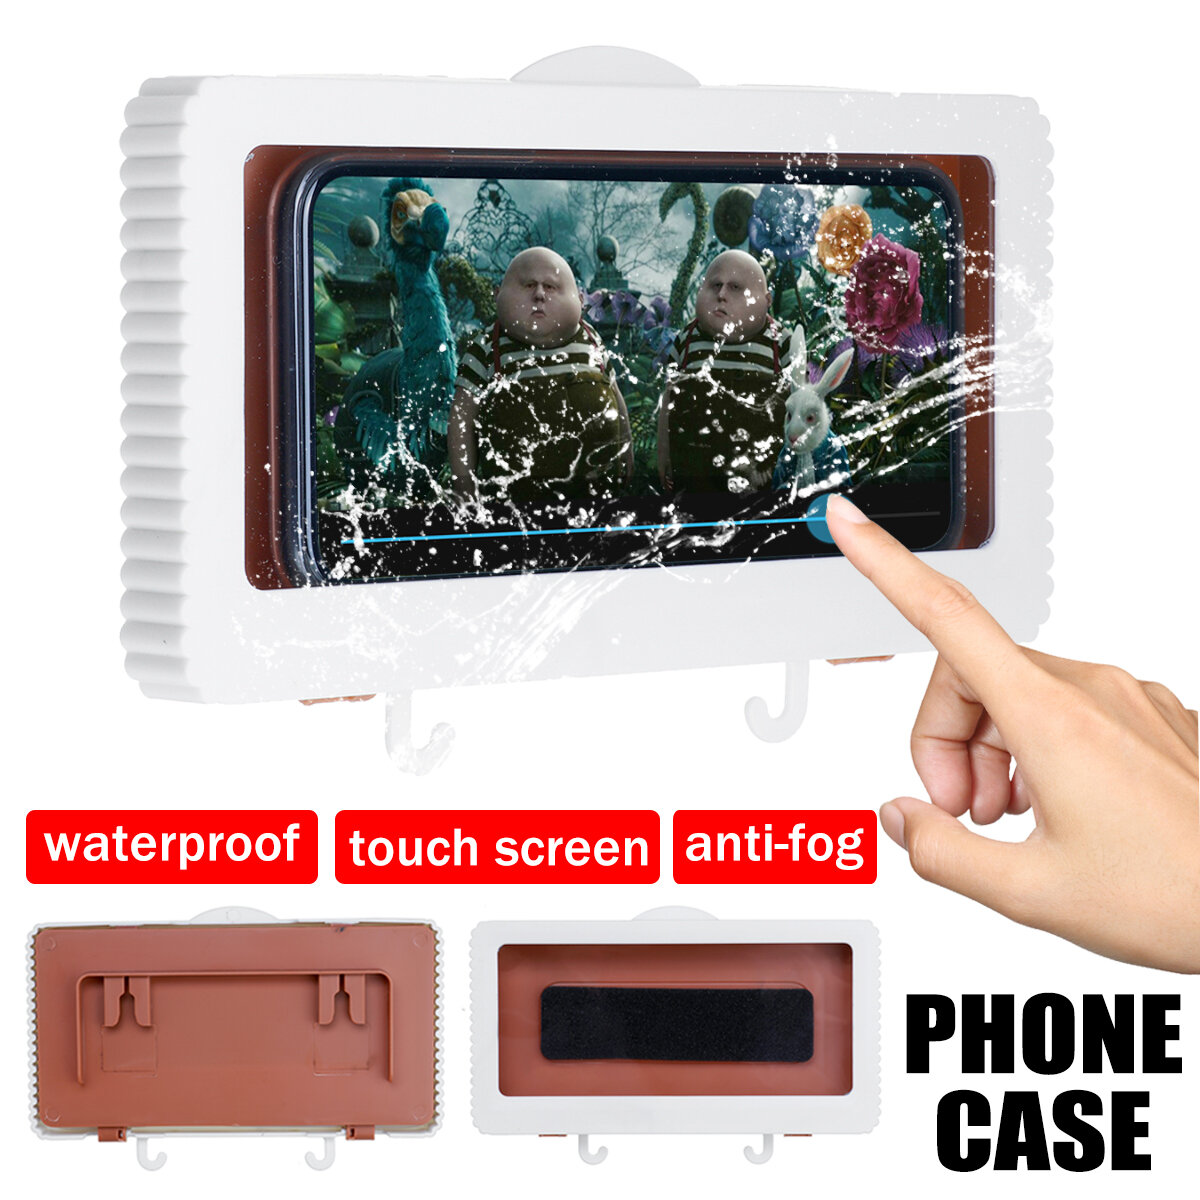 Touch Screen Waterproof Mobile Phone Case Bathroom Wall Mounted Holder Storager Sealed Organizer for Smartphone up to 6.